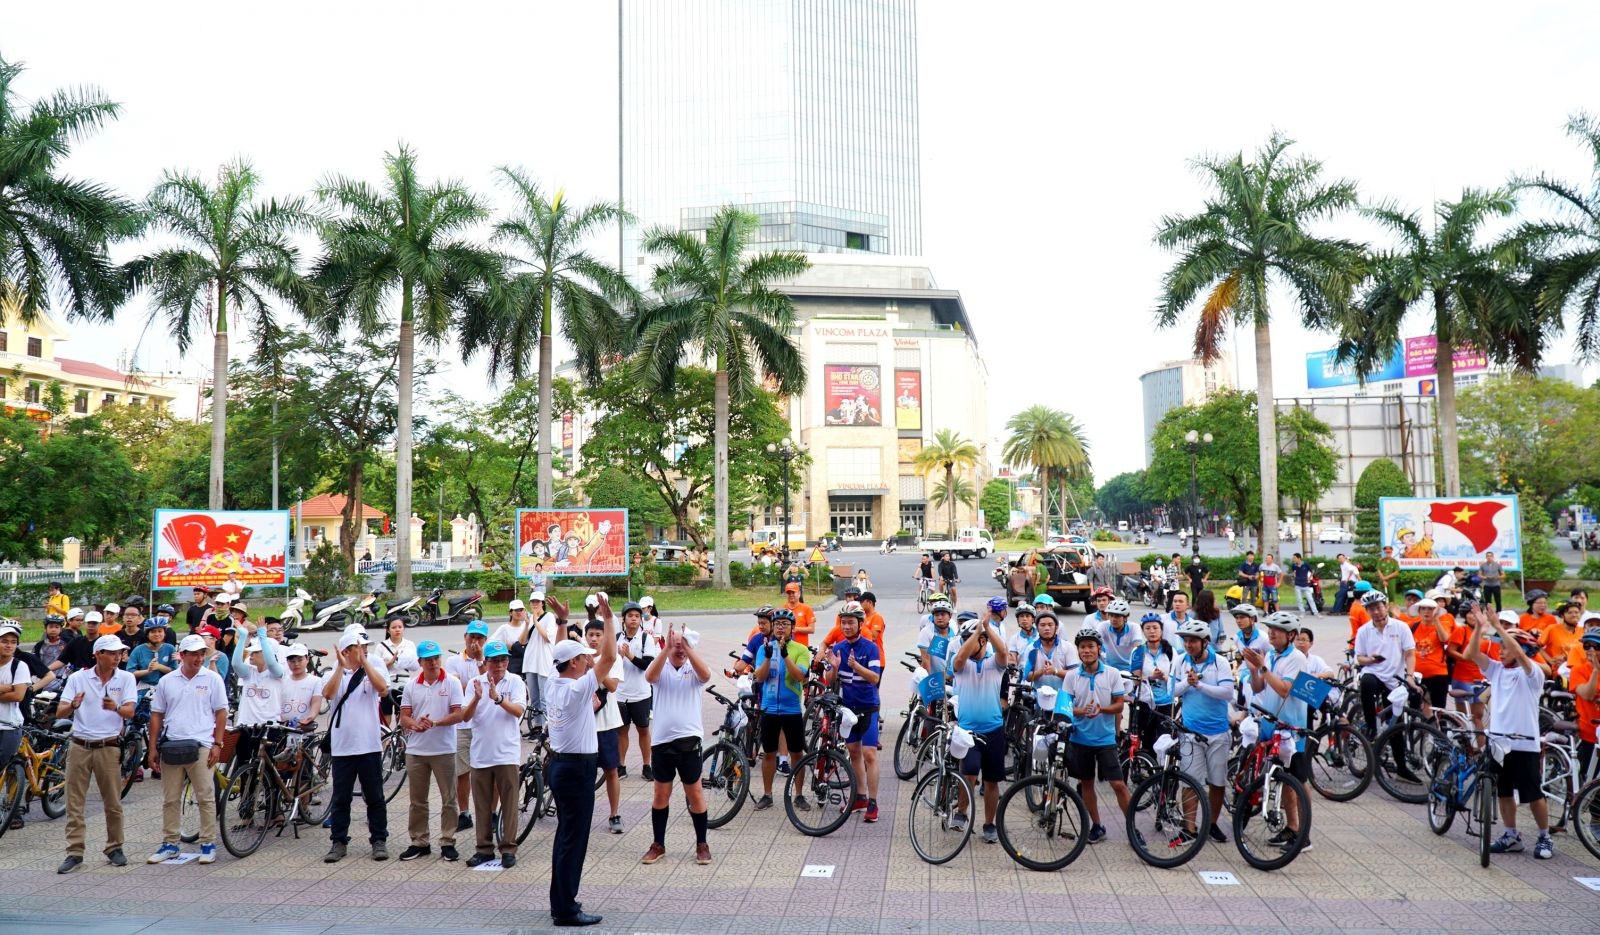 At 6 am, more than 200 people were present at the Cultural and Cinema Center to join in the garbage collection activity and calling on the community to use bicycles to reduce emissions